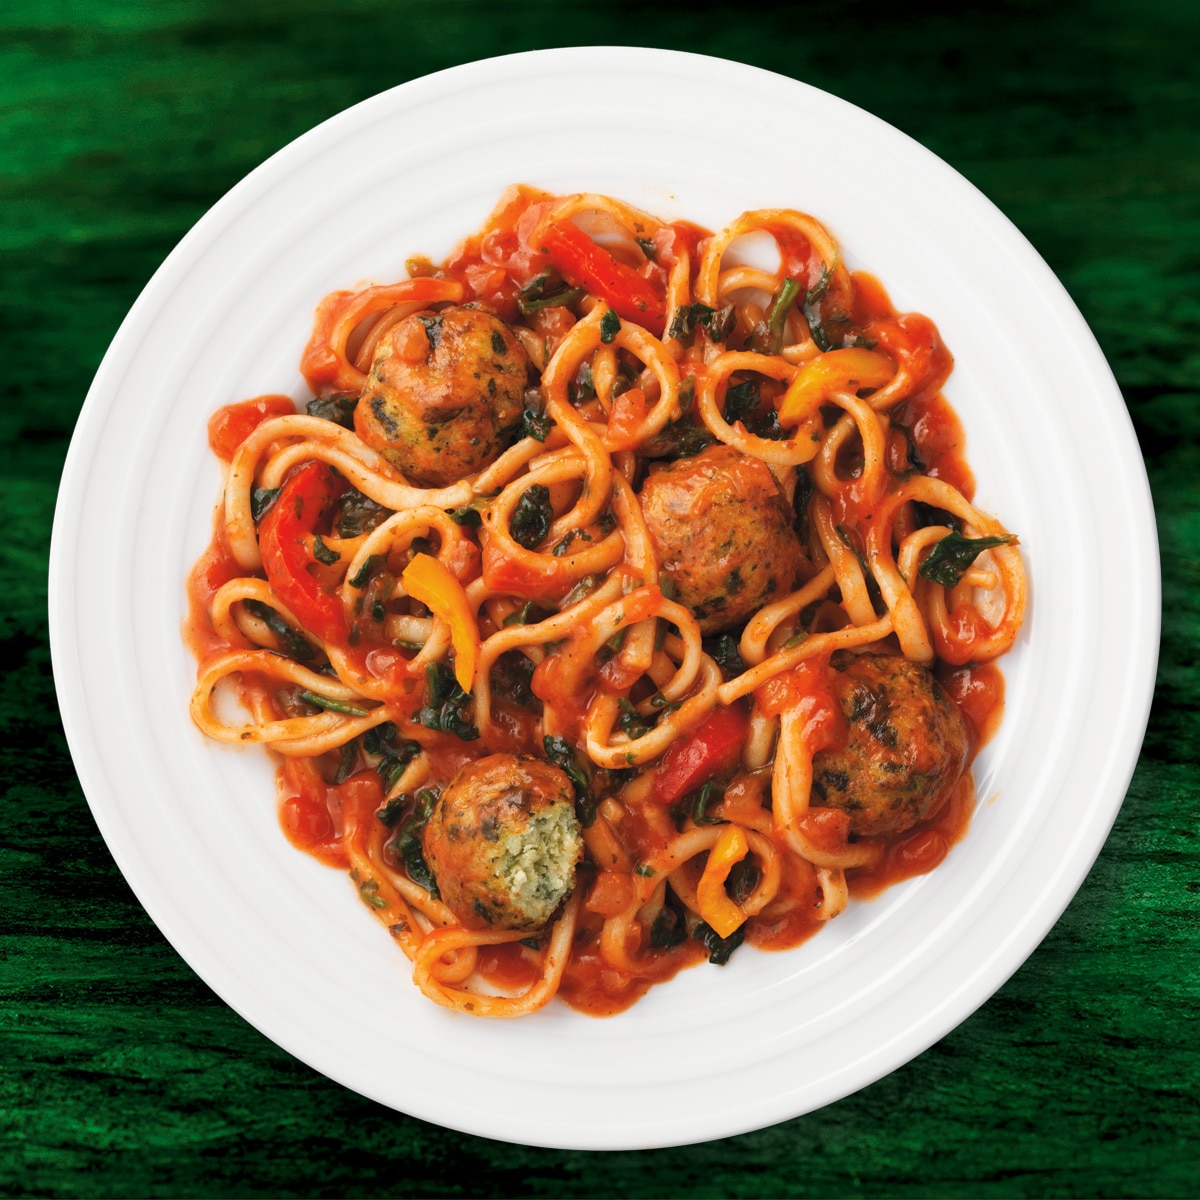 Linguine with Ricotta & Spinach Meatless Meatballs